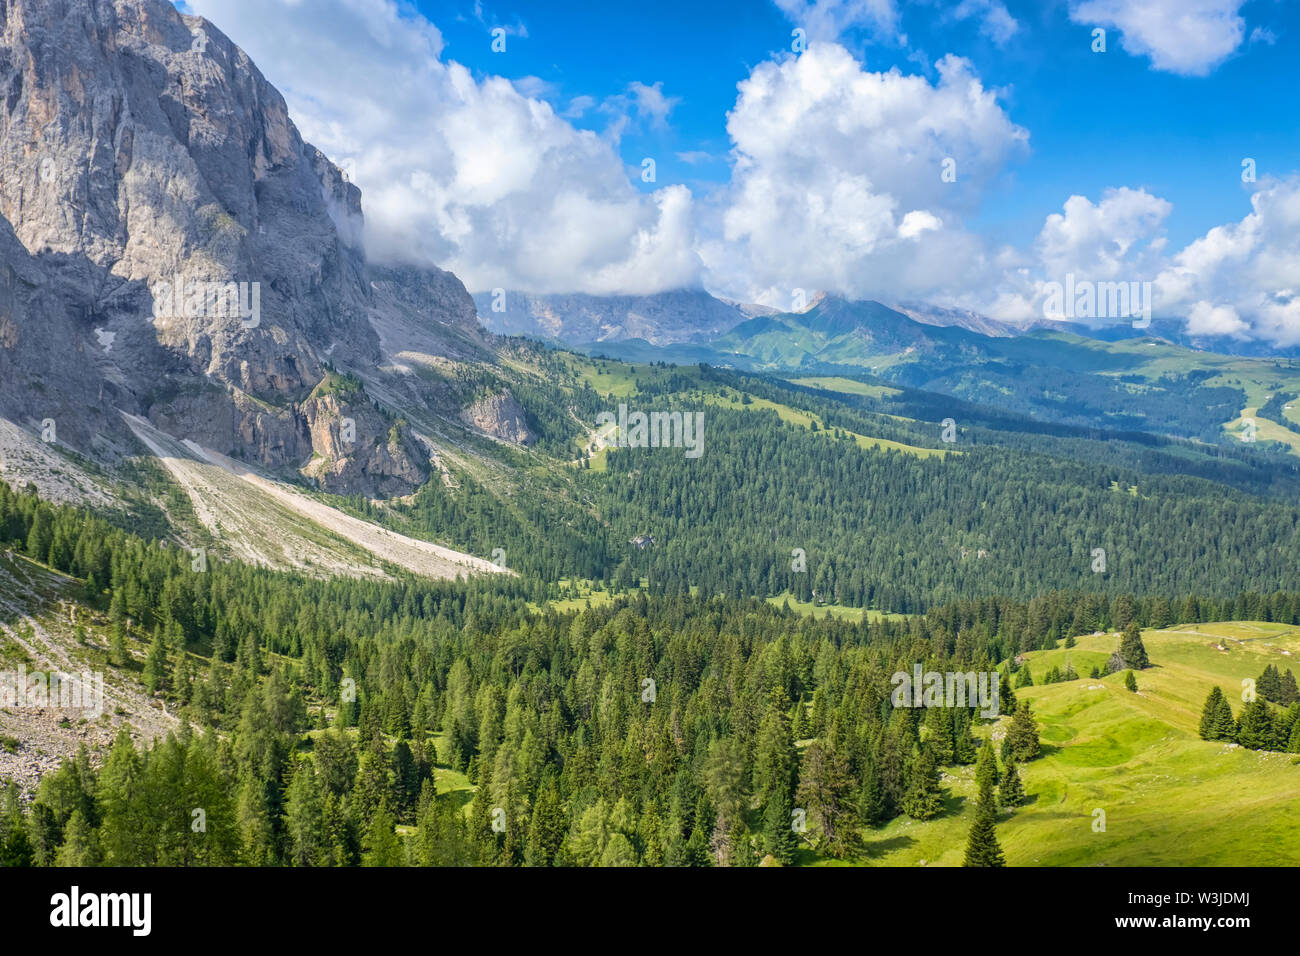 View of a valley and mountains in the alps in the summer - Stock Image